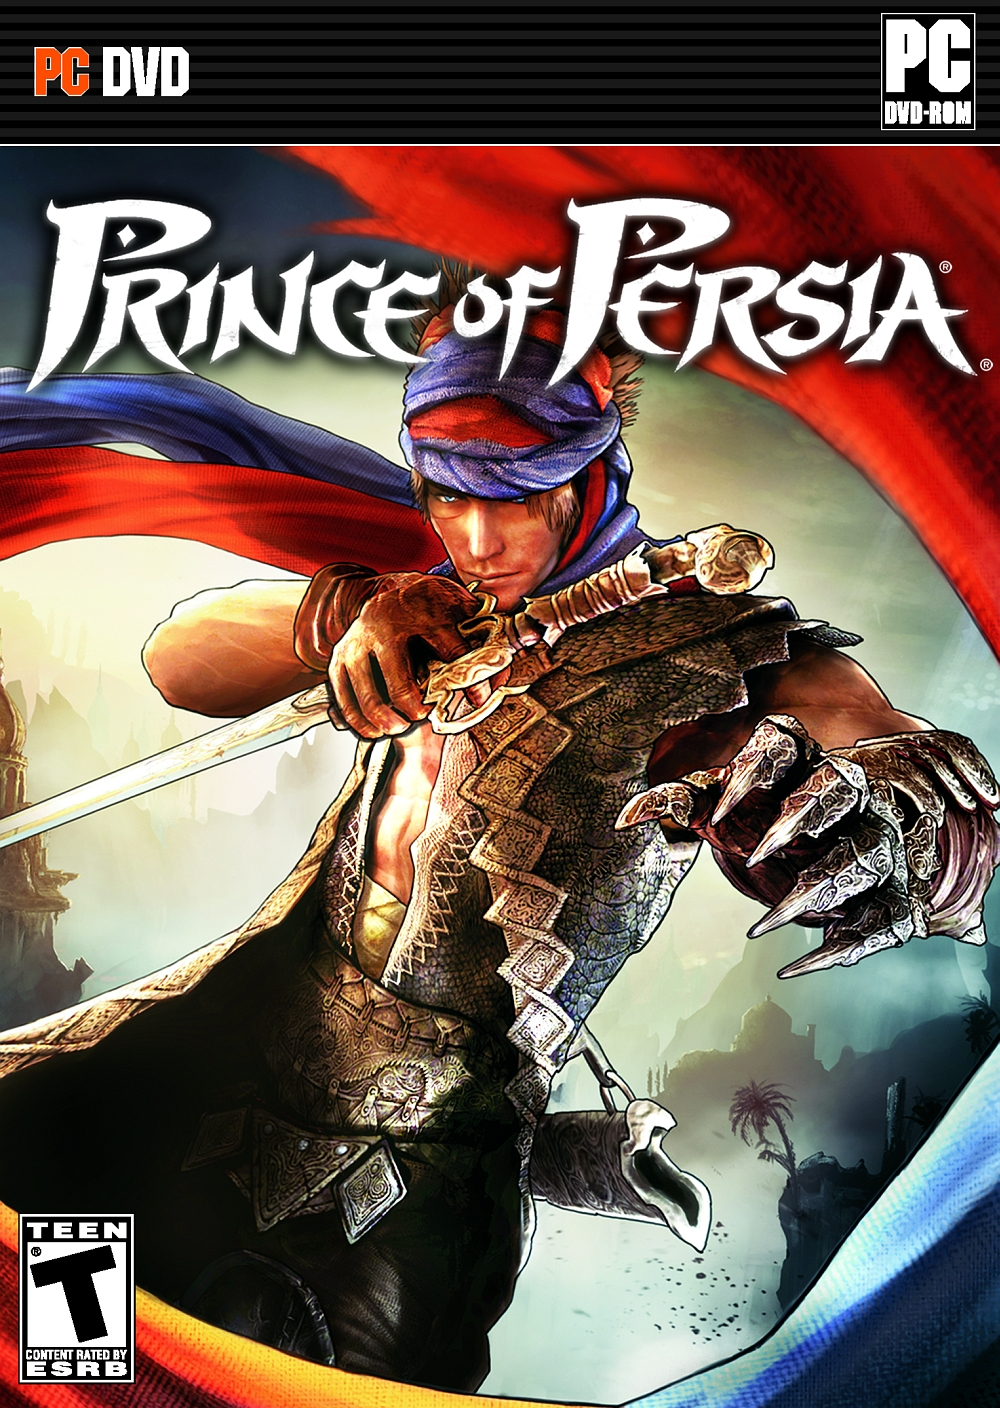 Prince of persia: warrior within pc review and full download.